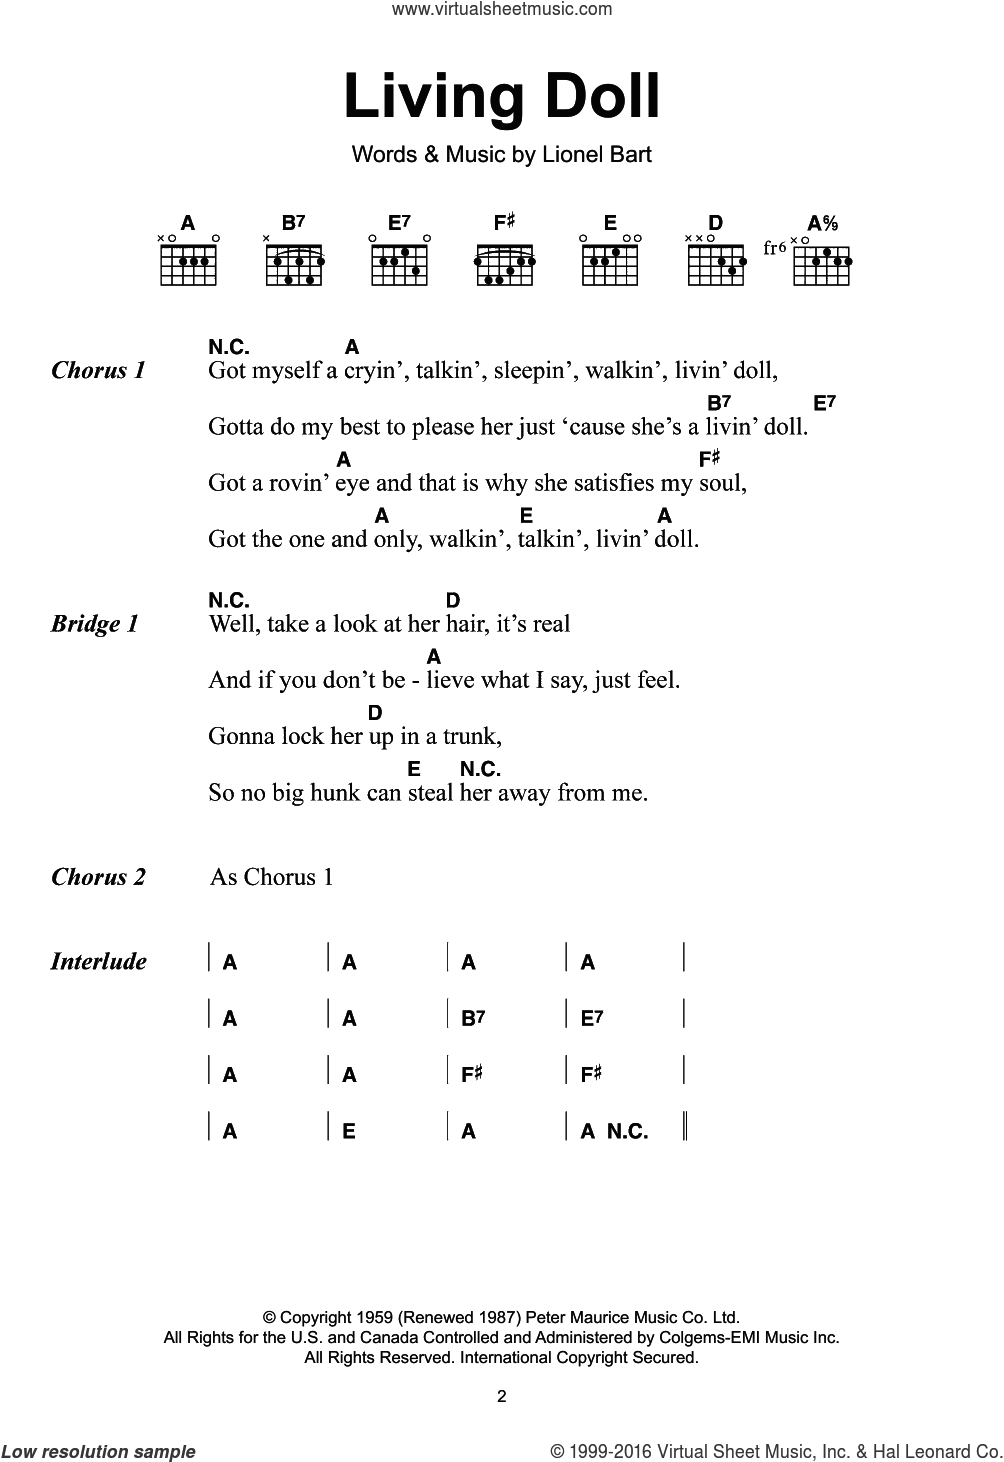 Richard Living Doll Sheet Music For Guitar Chords Pdf